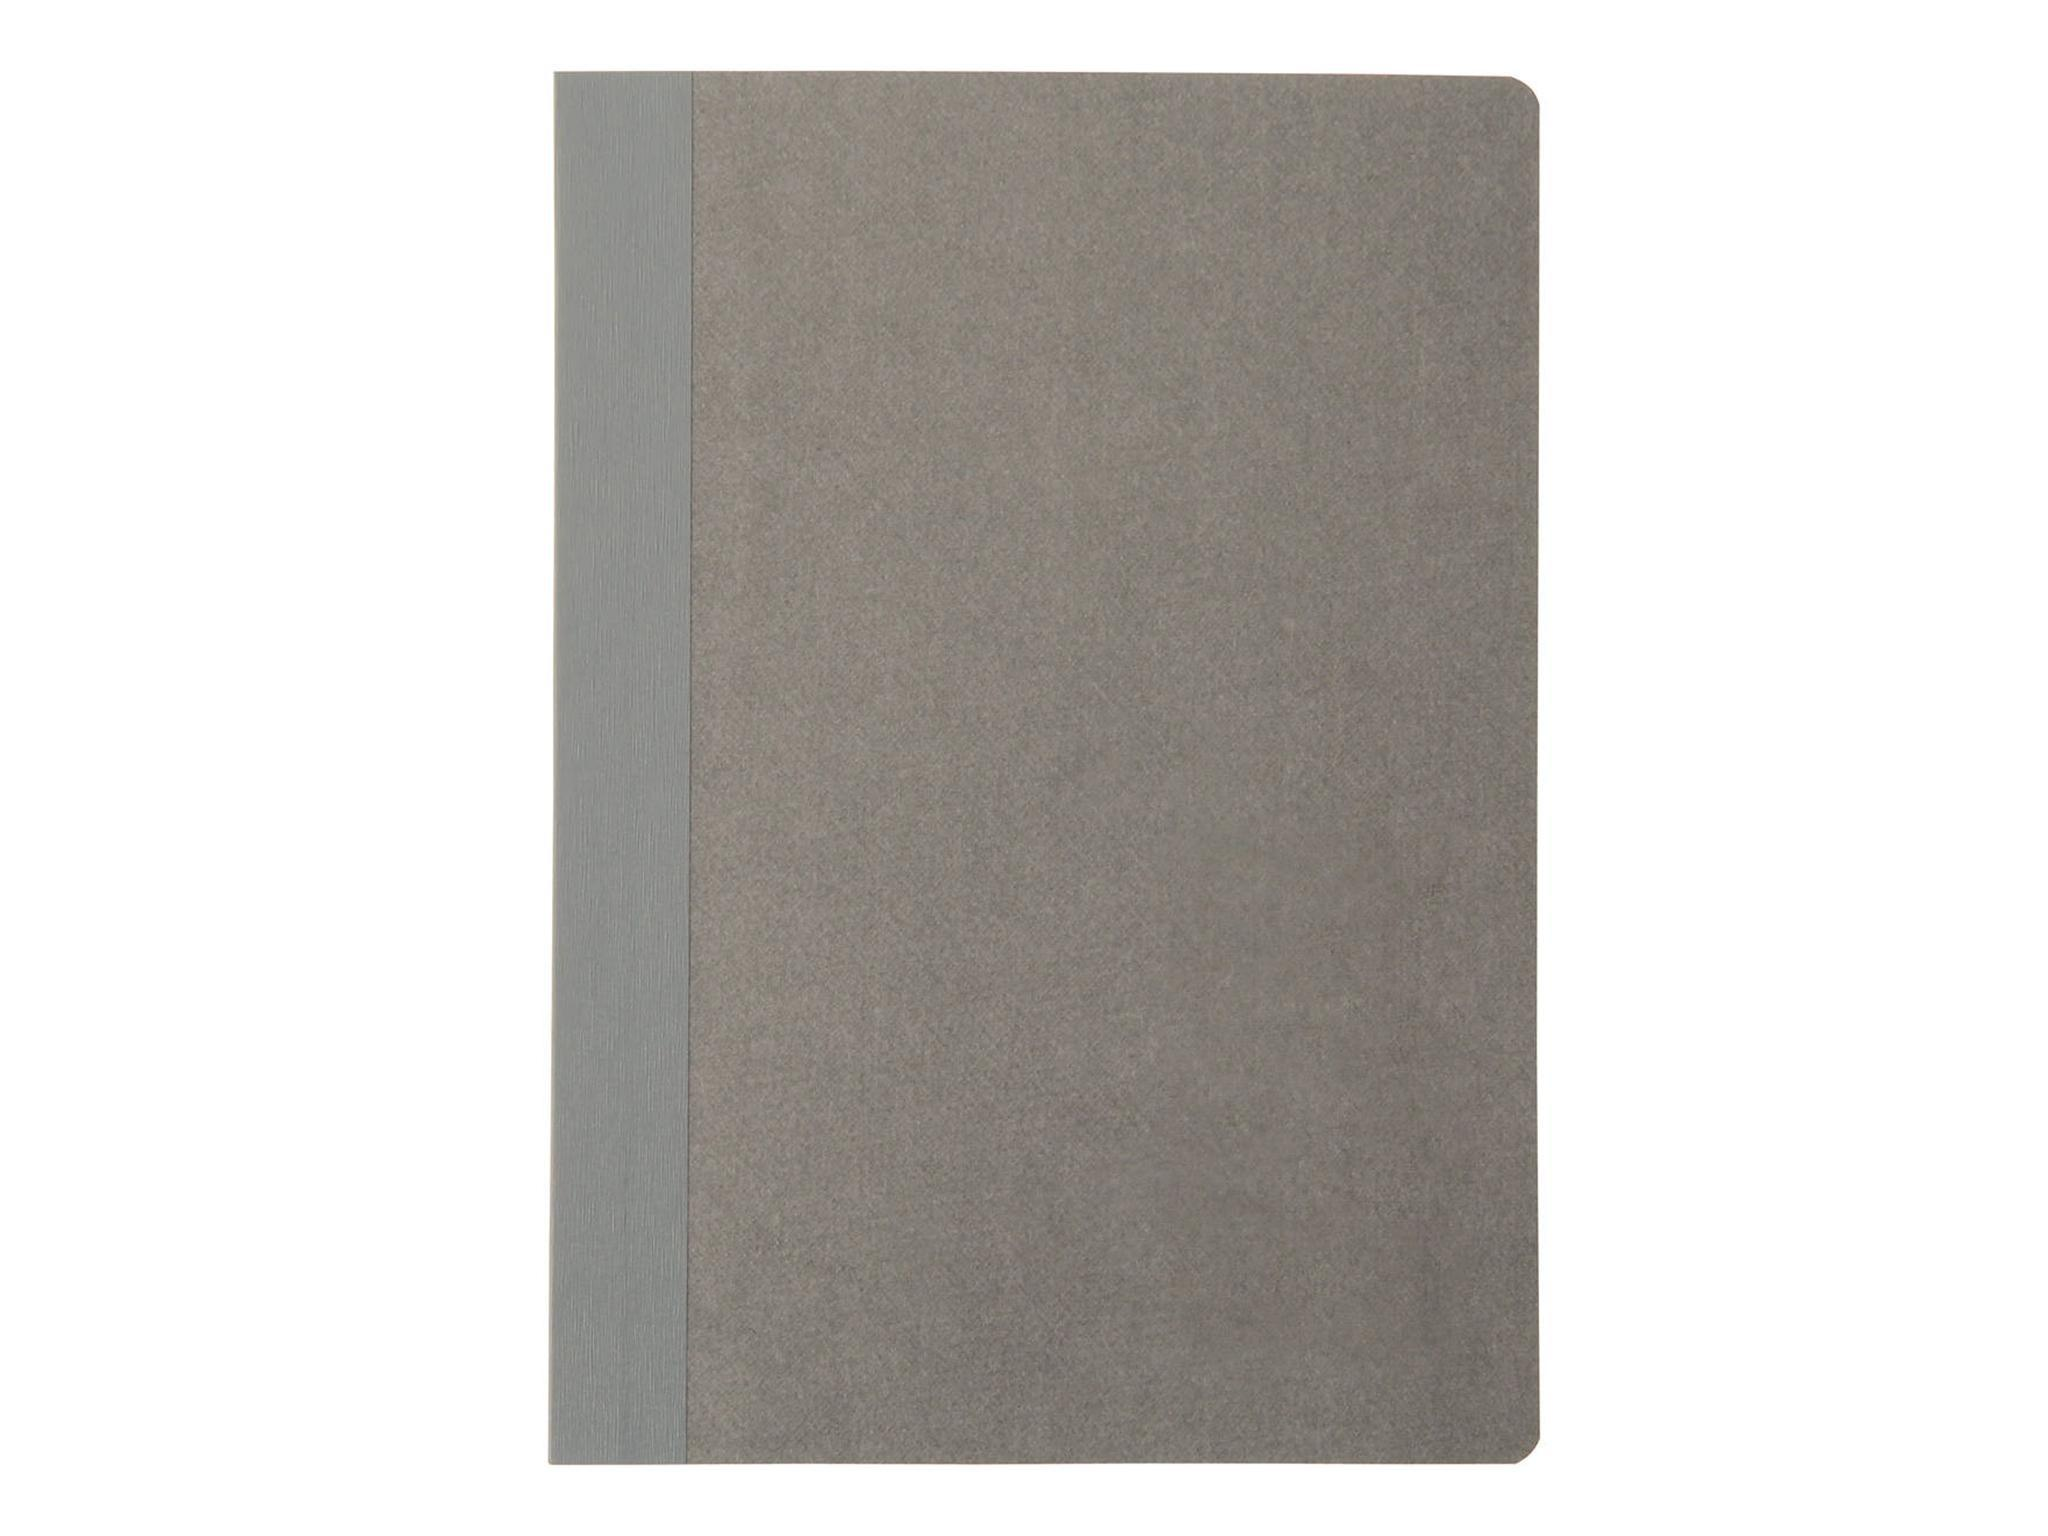 Affordable and smartly designed, this notebook is ideal for packing in a school bagMuji